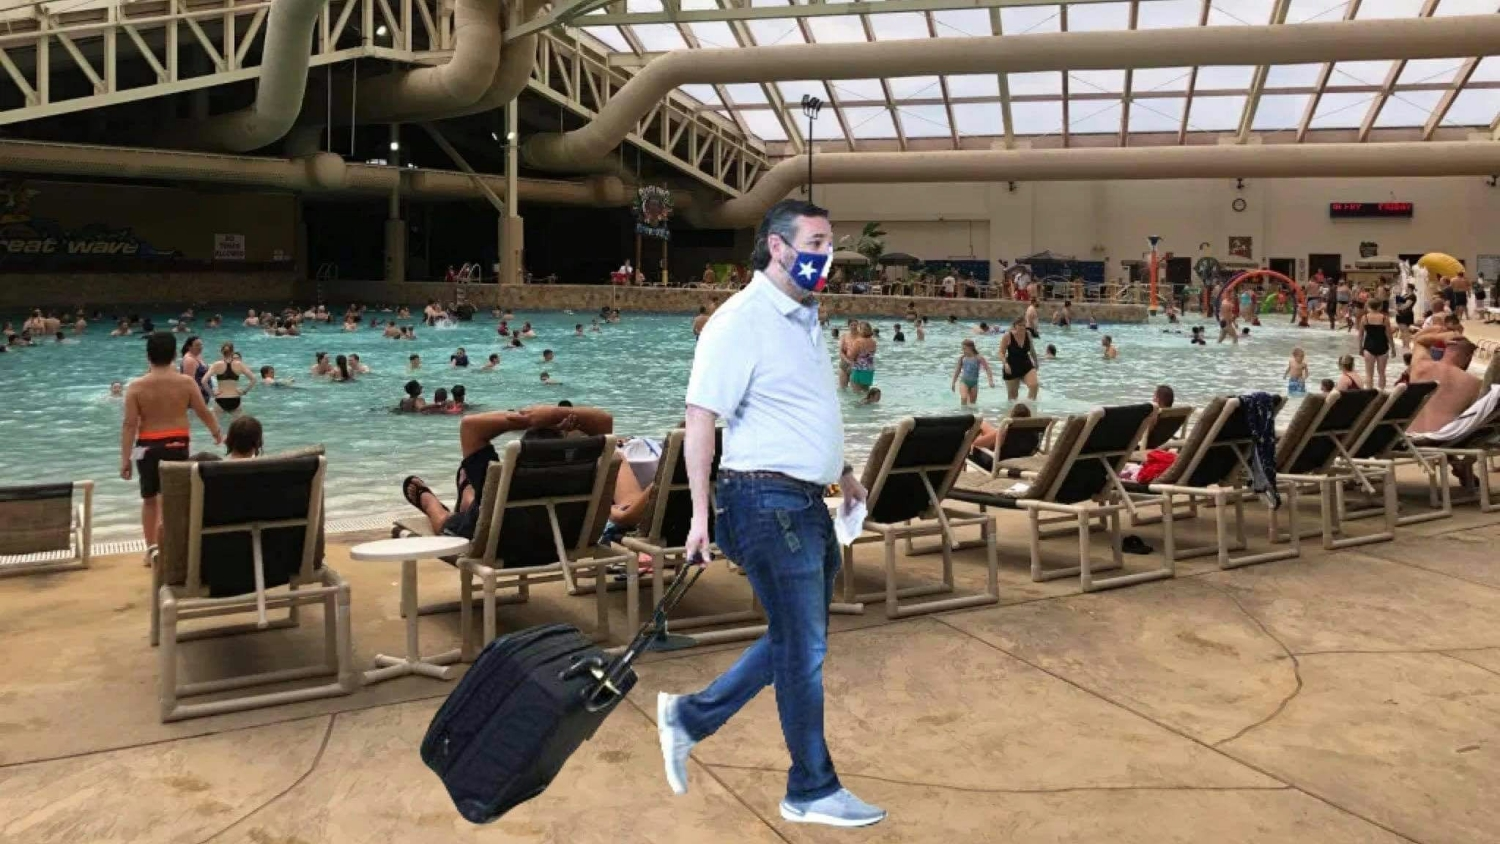 Ted Cruz hides away at Americas greatest water park